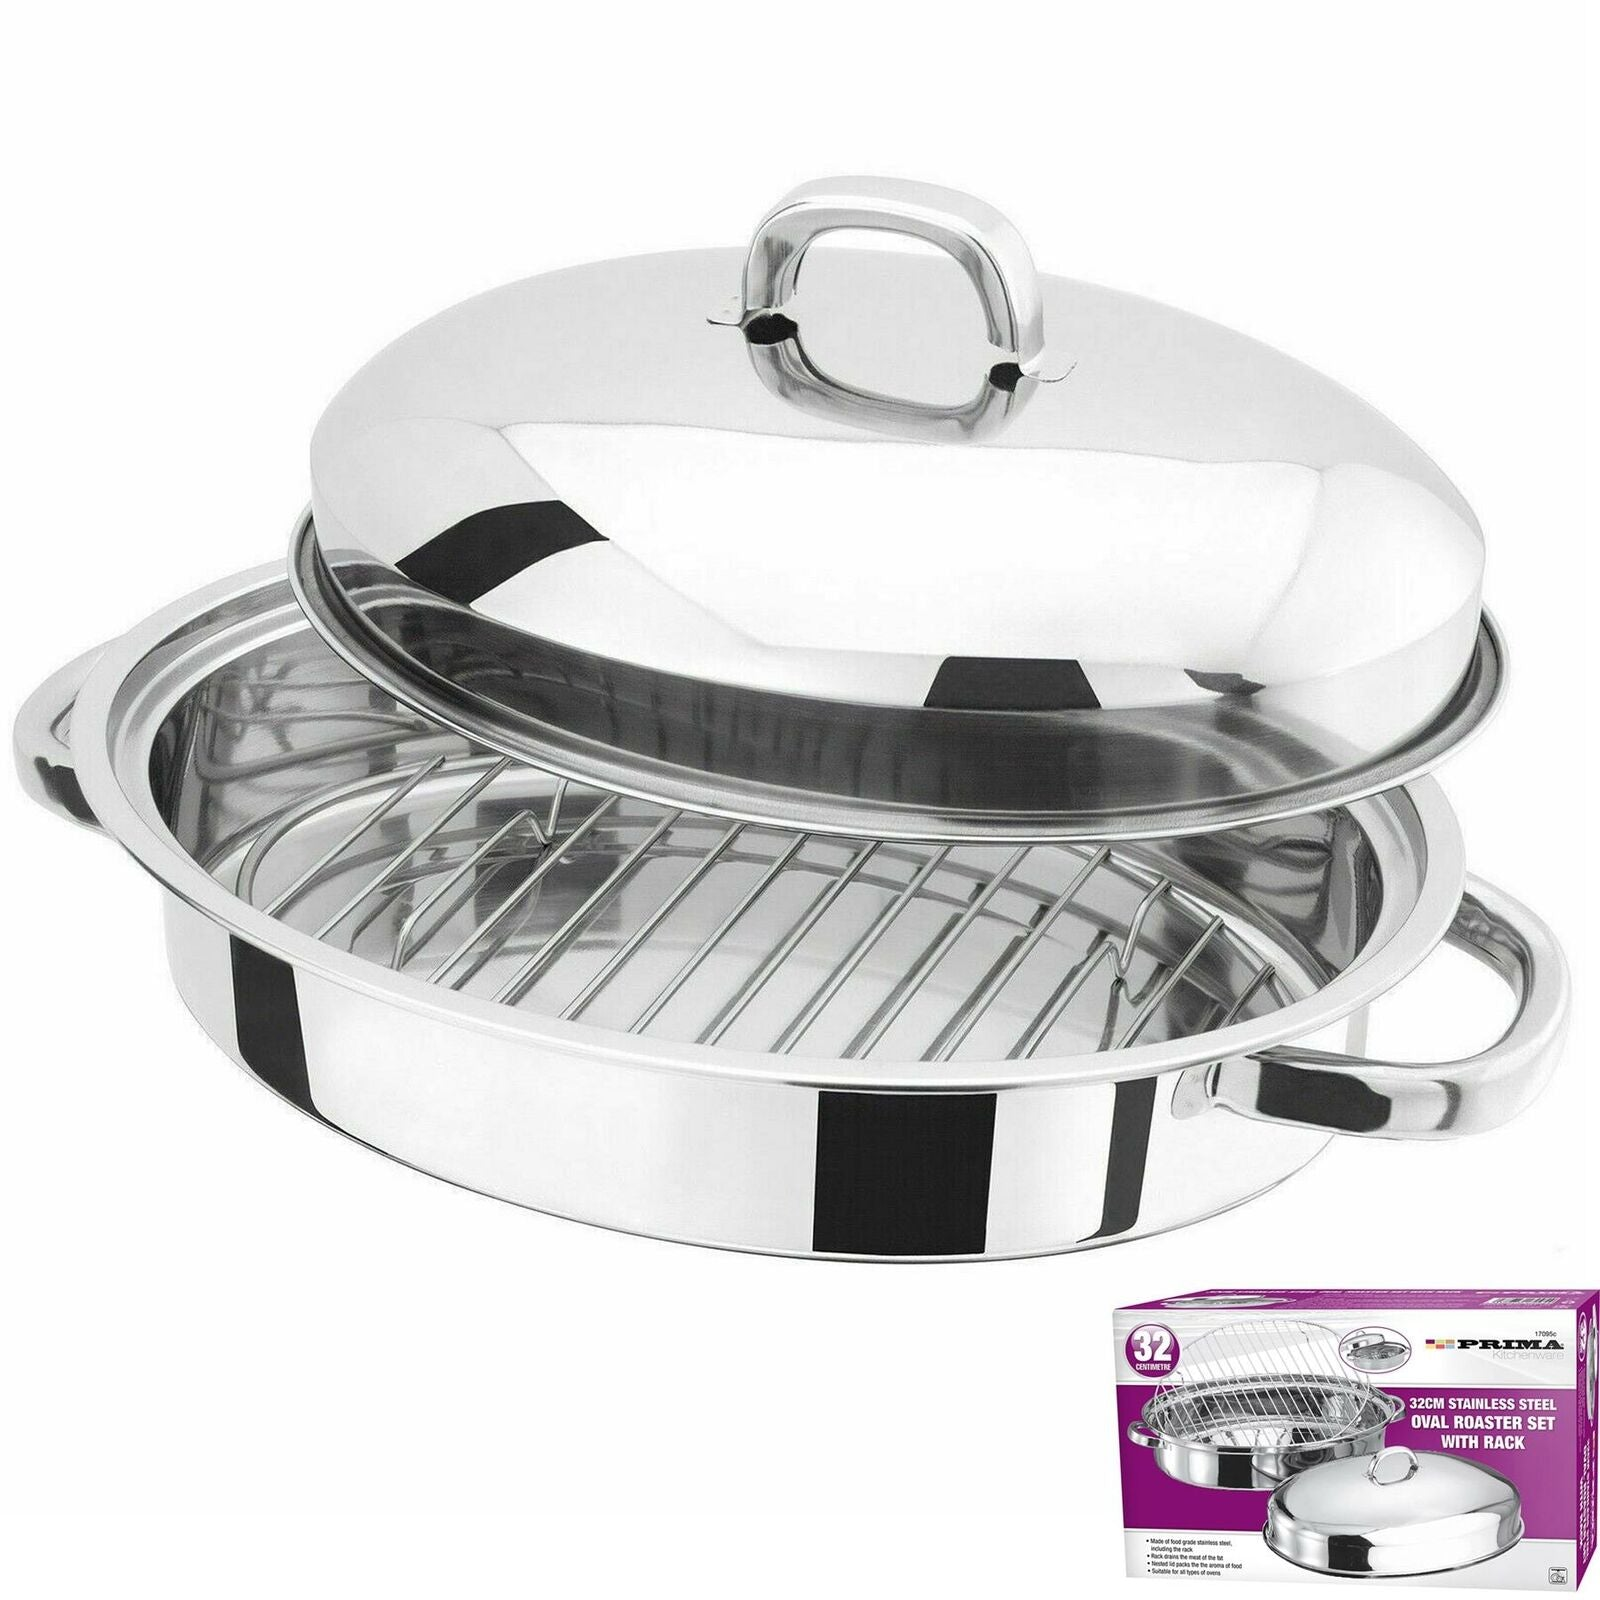 New 32cm Stainless Steel Roasting Tray Pan Set Lid Oval Kitchen Cooking Baking